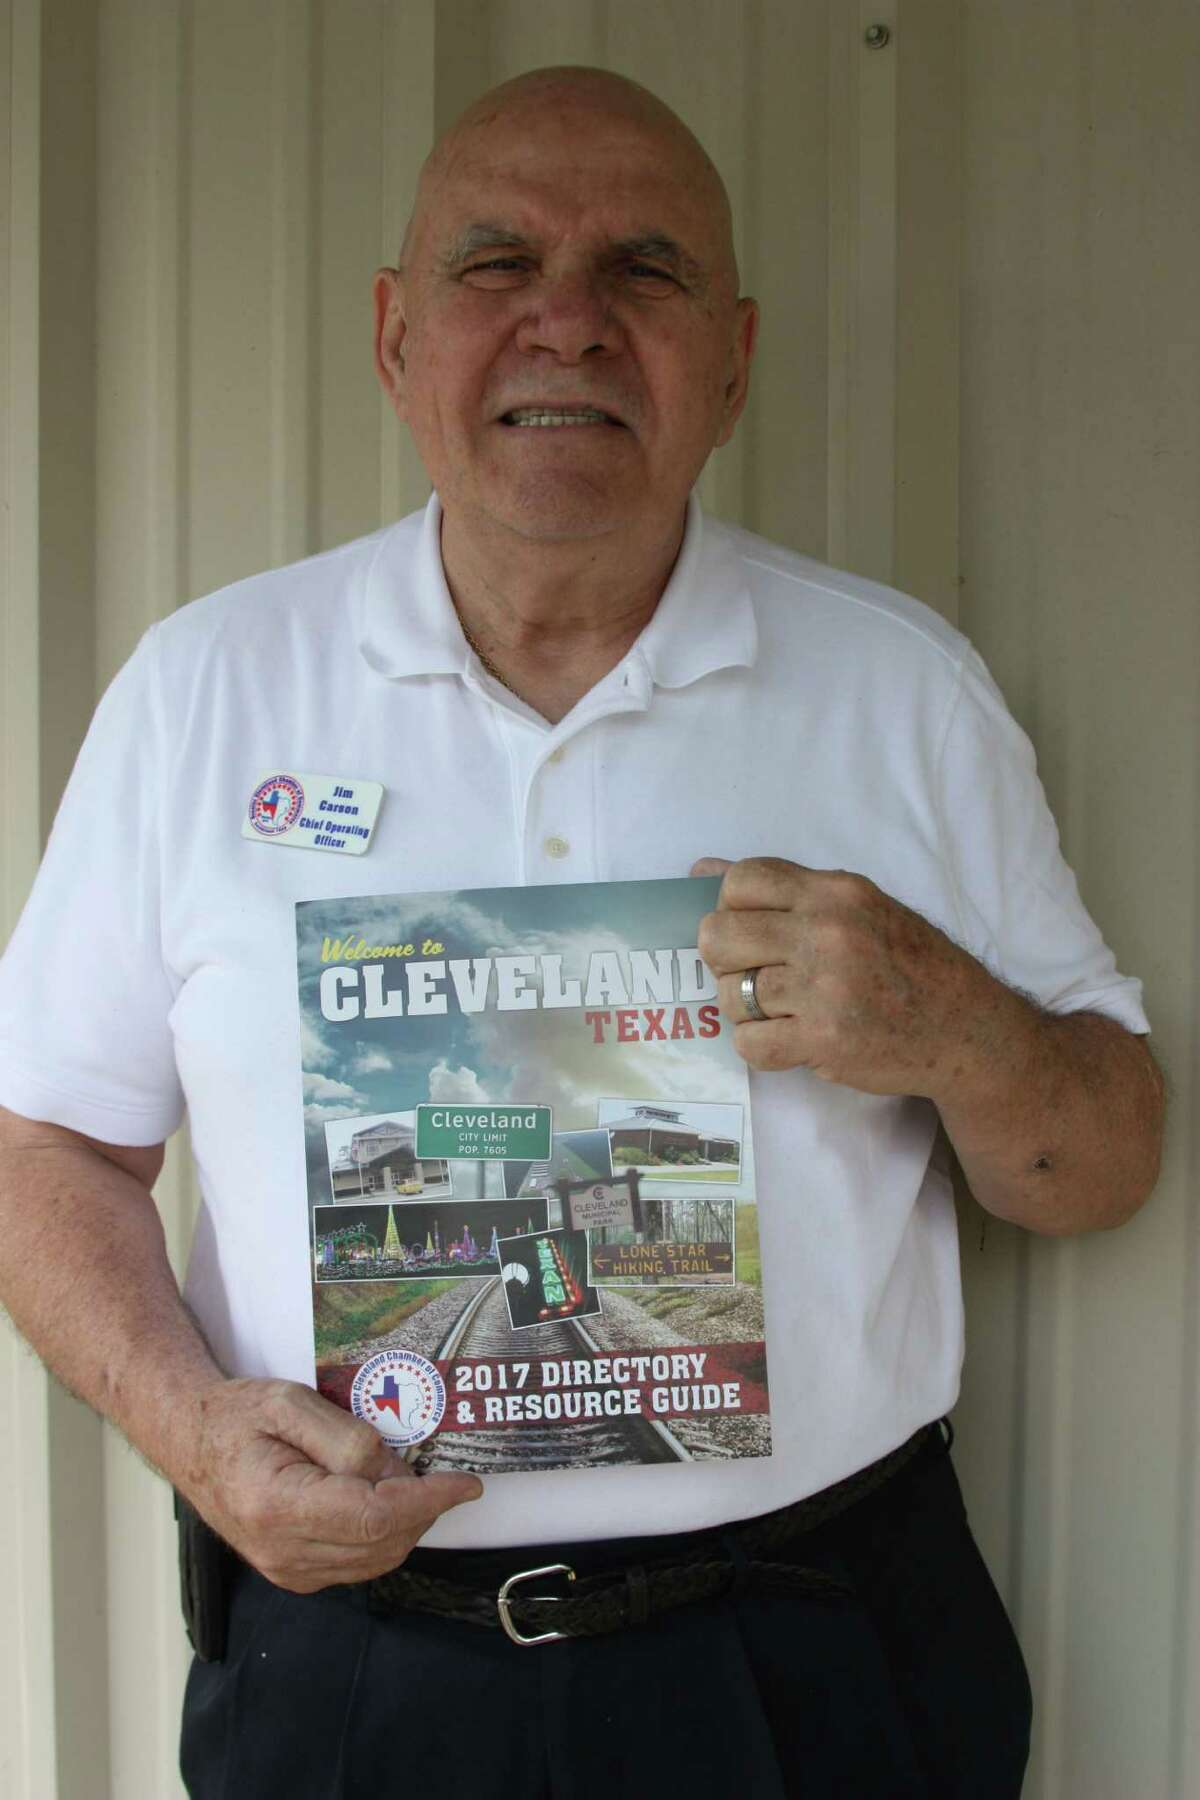 Greater Cleveland Chamber of Commerce Chief Operating Officer Jim Carson presents the new 2017 Directory and Resource Guide welcoming visitors to Cleveland. The Chamber has an estimated 3,000 copies made and placed in various businesses including local hotels, title companies, real estate agencies and banks.